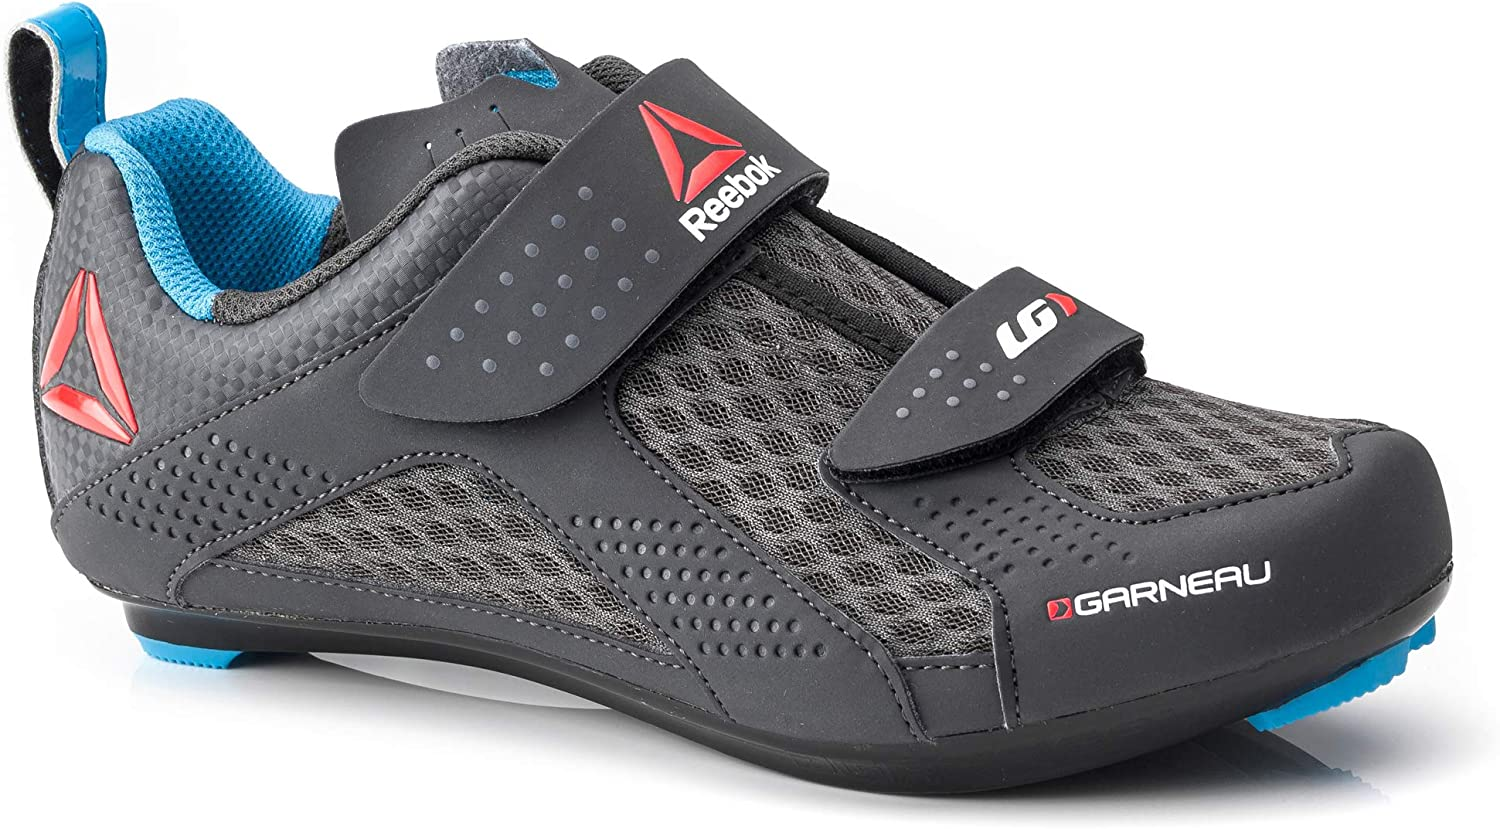 Louis Garneau Women s Actifly Indoor Cycling Shoes, A Collaboration with Reebok